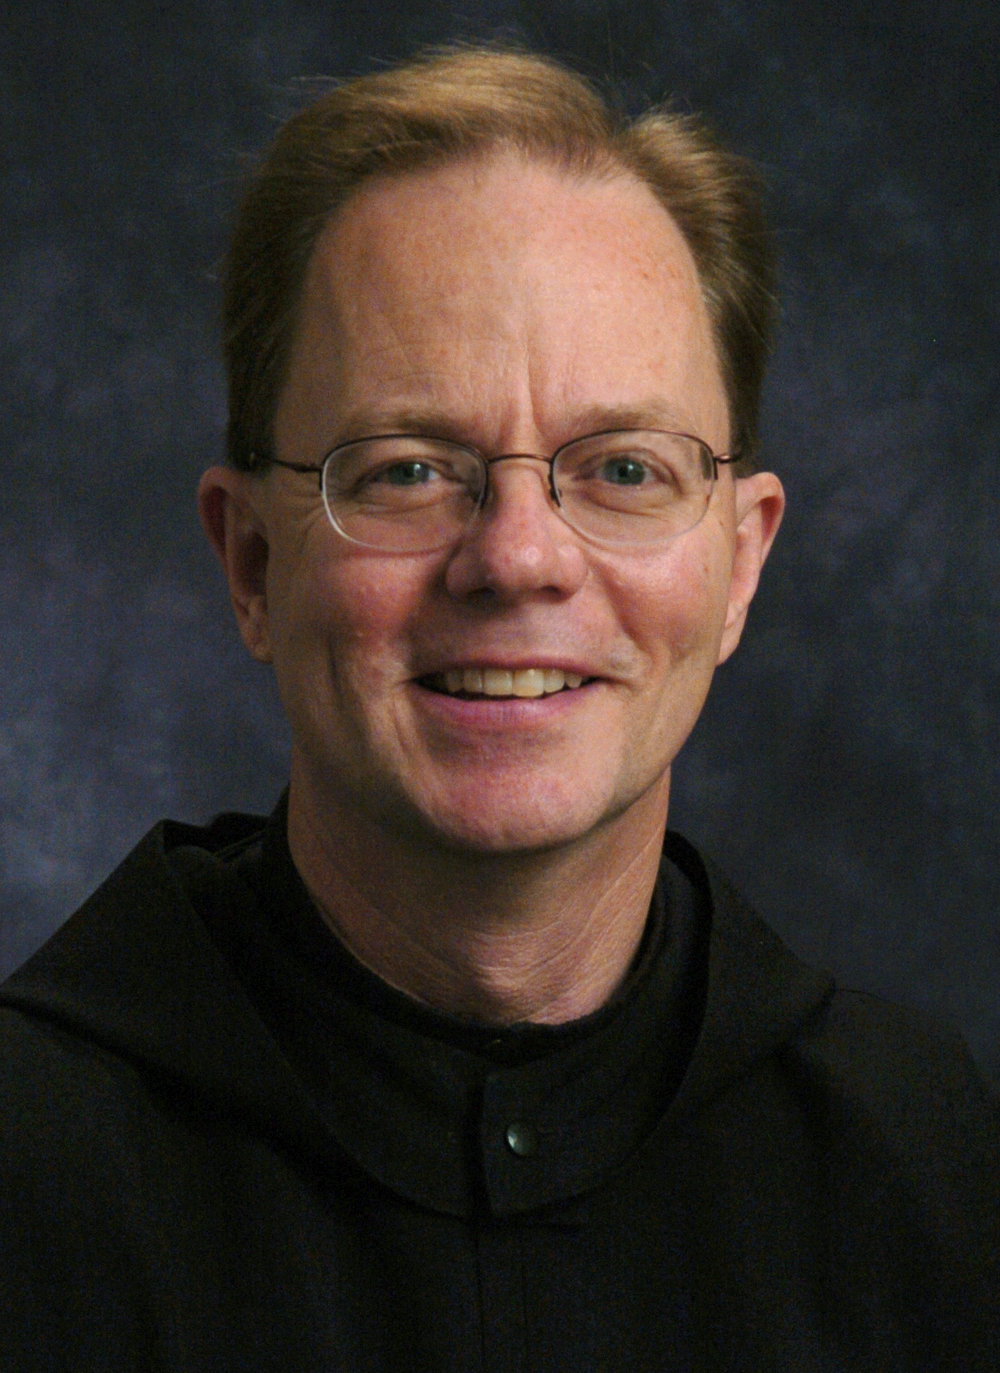 BR. PAUL-VINCENT NIEBAUER, OSB Saint John's Abbey Vocation Team Leader; Director of Marketing & Communications; Saint John's Preparatory Theatre Director B.A. Theatre and Secondary Education University of Wisconsin at Madison, 1976; MA Directing, Chicago School of Performing Arts at Roosevelt University, 2002